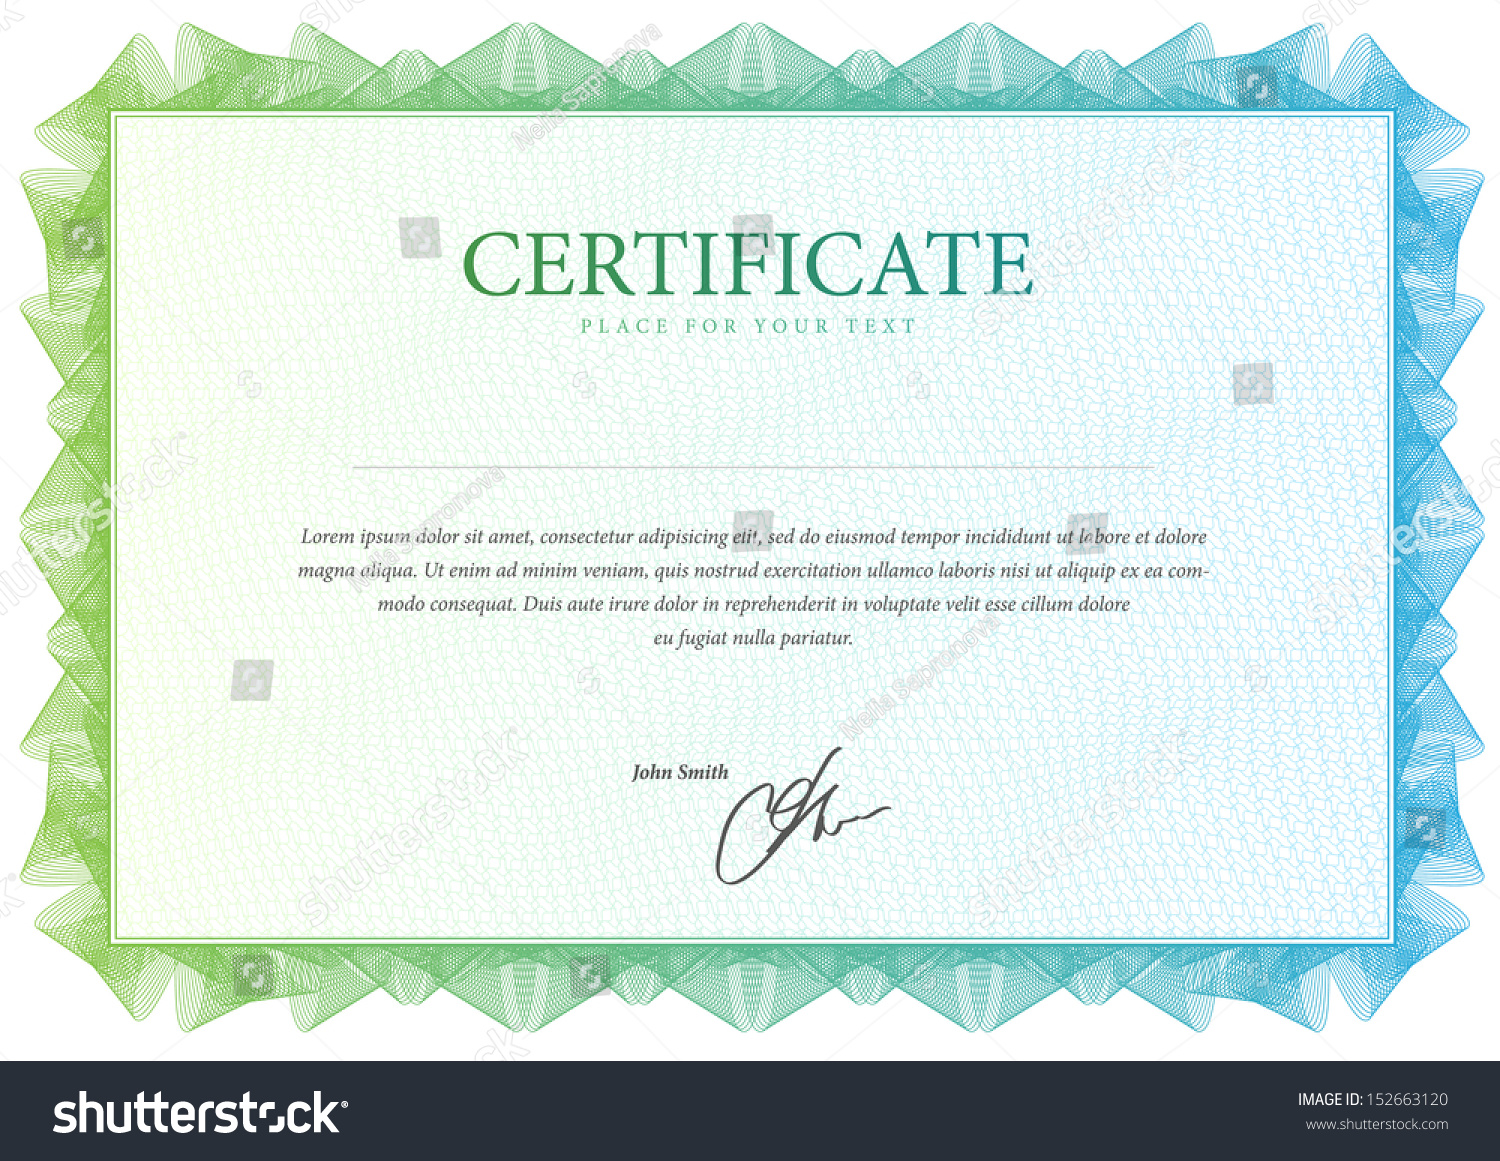 free share certificate template certificate template microsoft – Blank Share Certificate